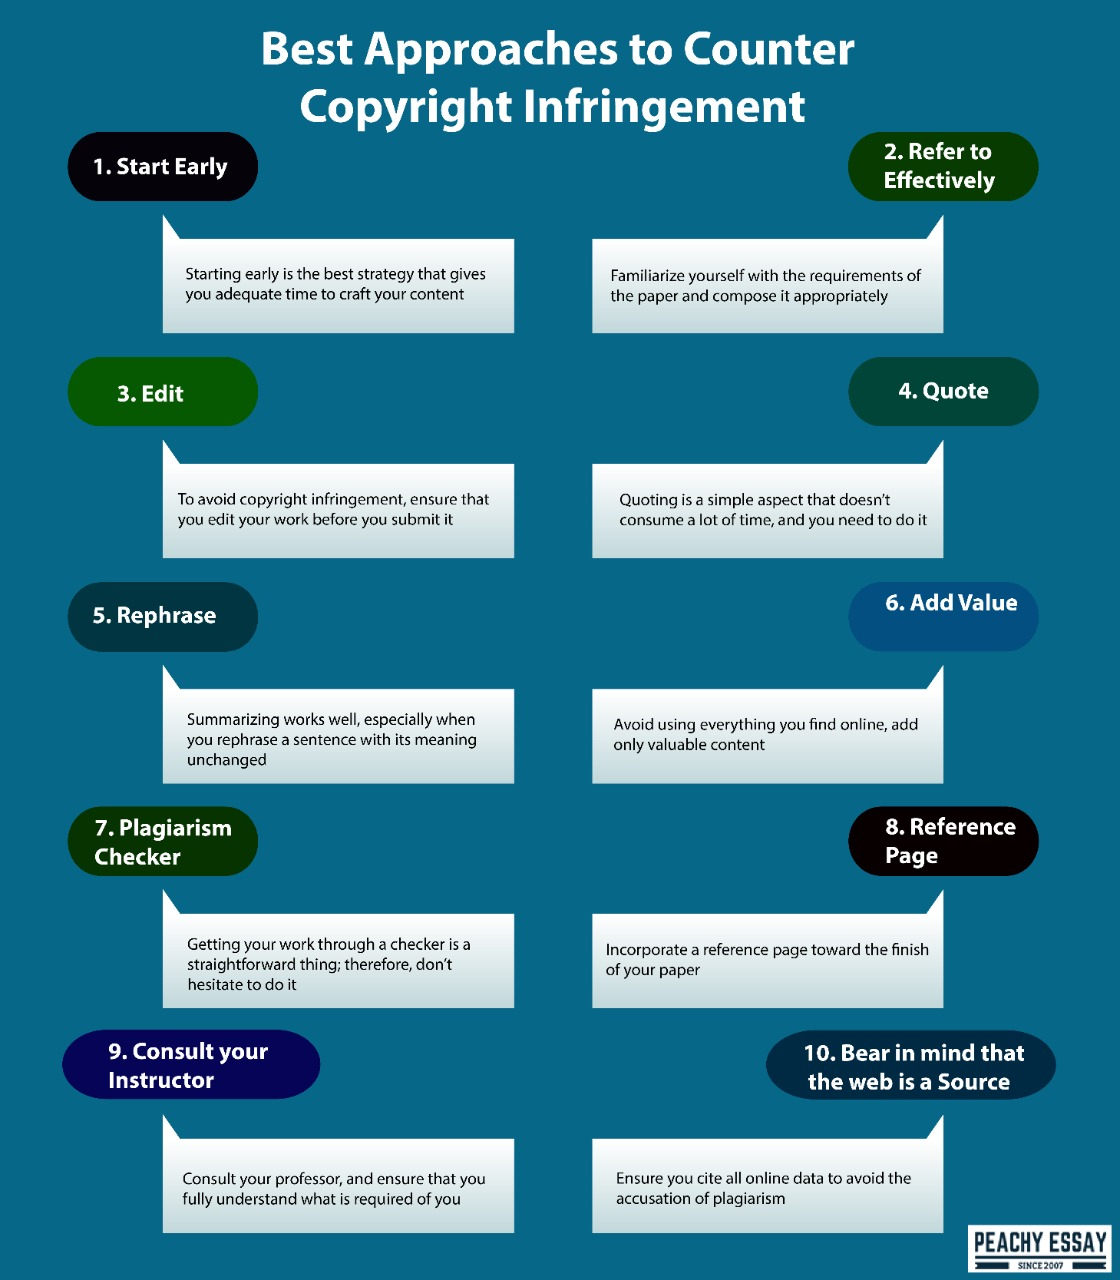 best approaches to counter copyright infringement